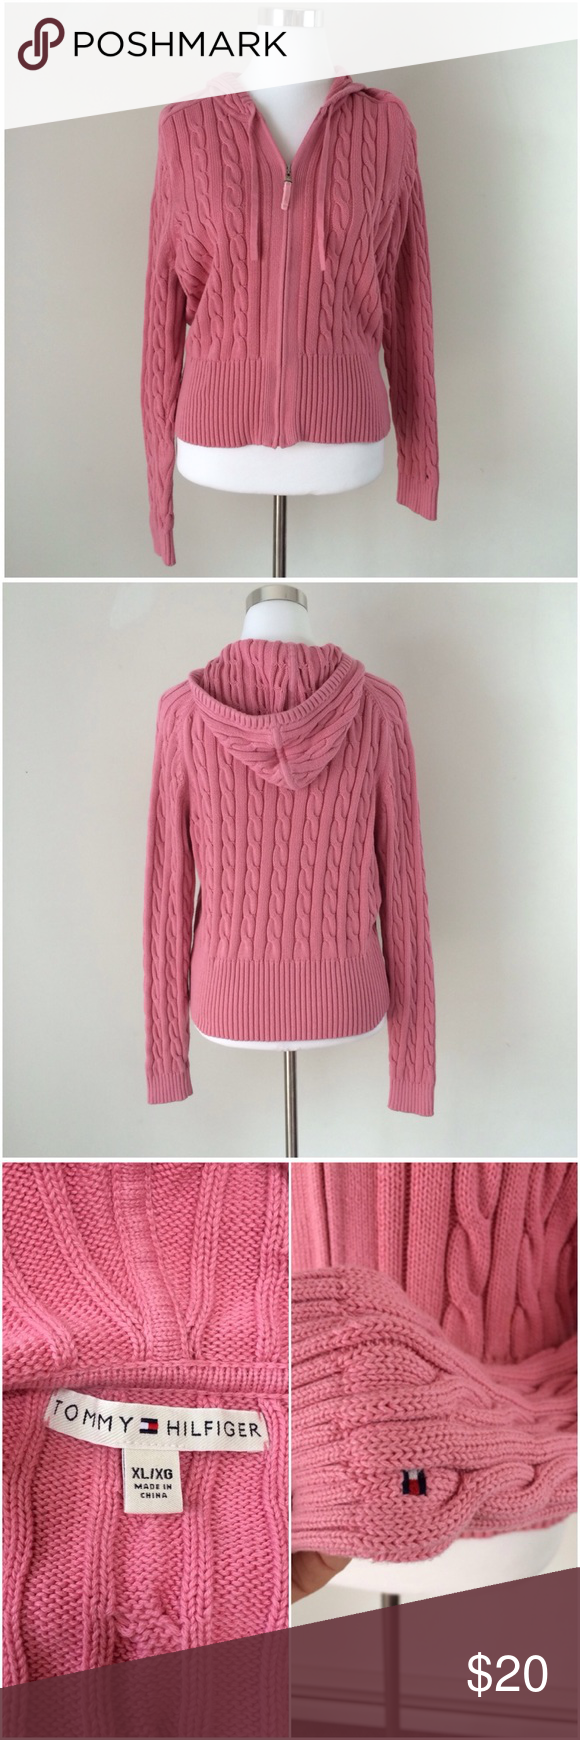 Tommy Hilfiger Pink Zip Up Hooded Sweater | Pink, Logos and Tommy ...